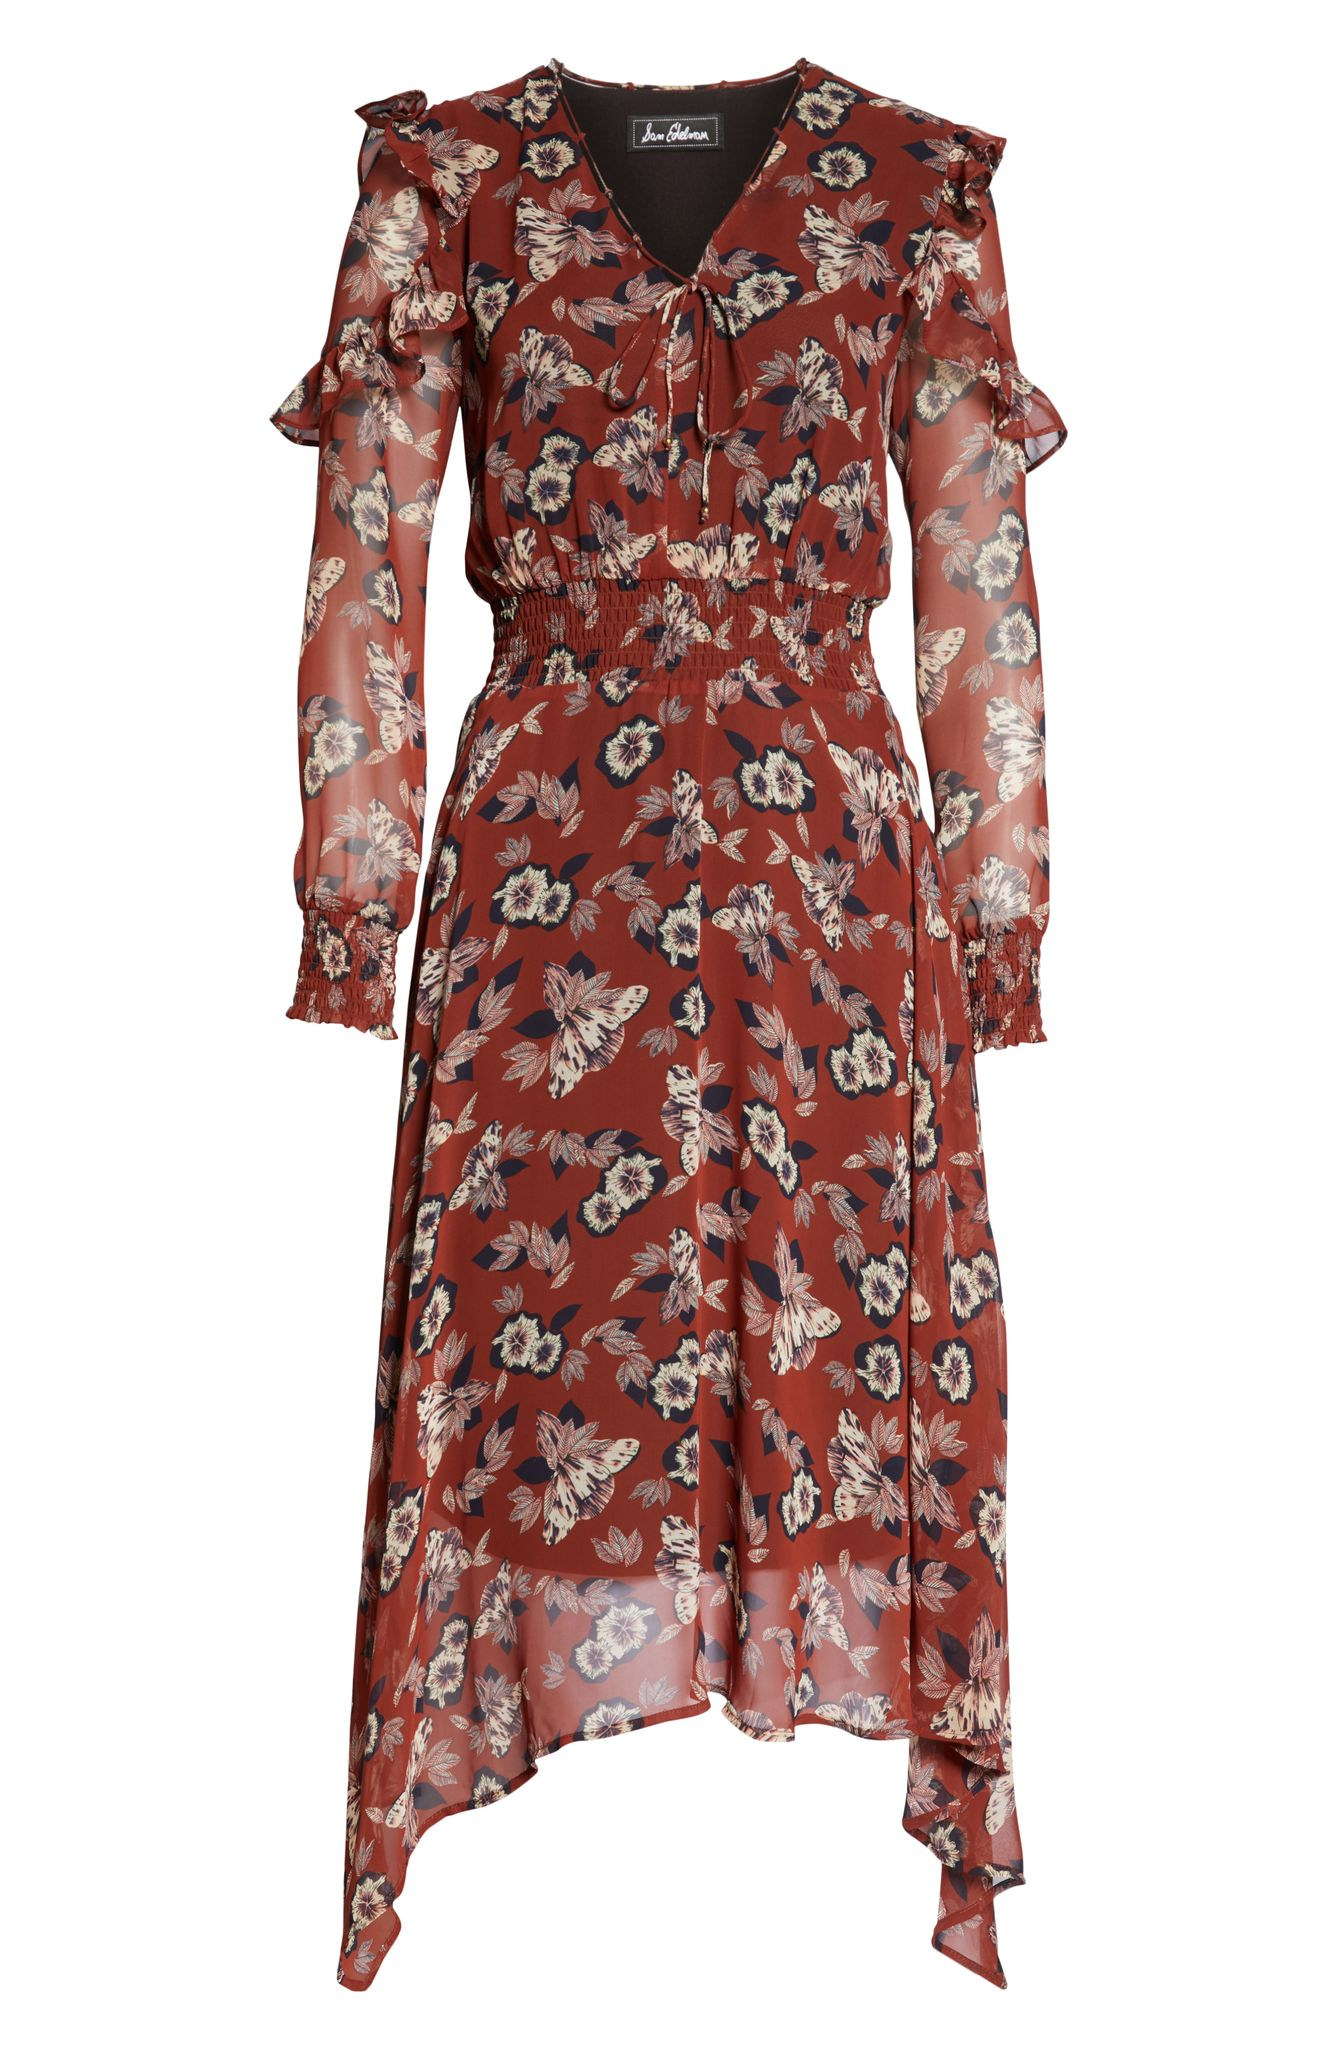 Sam Edelman Fanciful Flower Dress (normally $178): NOW $118.90 (Image: Nordstrom){ }